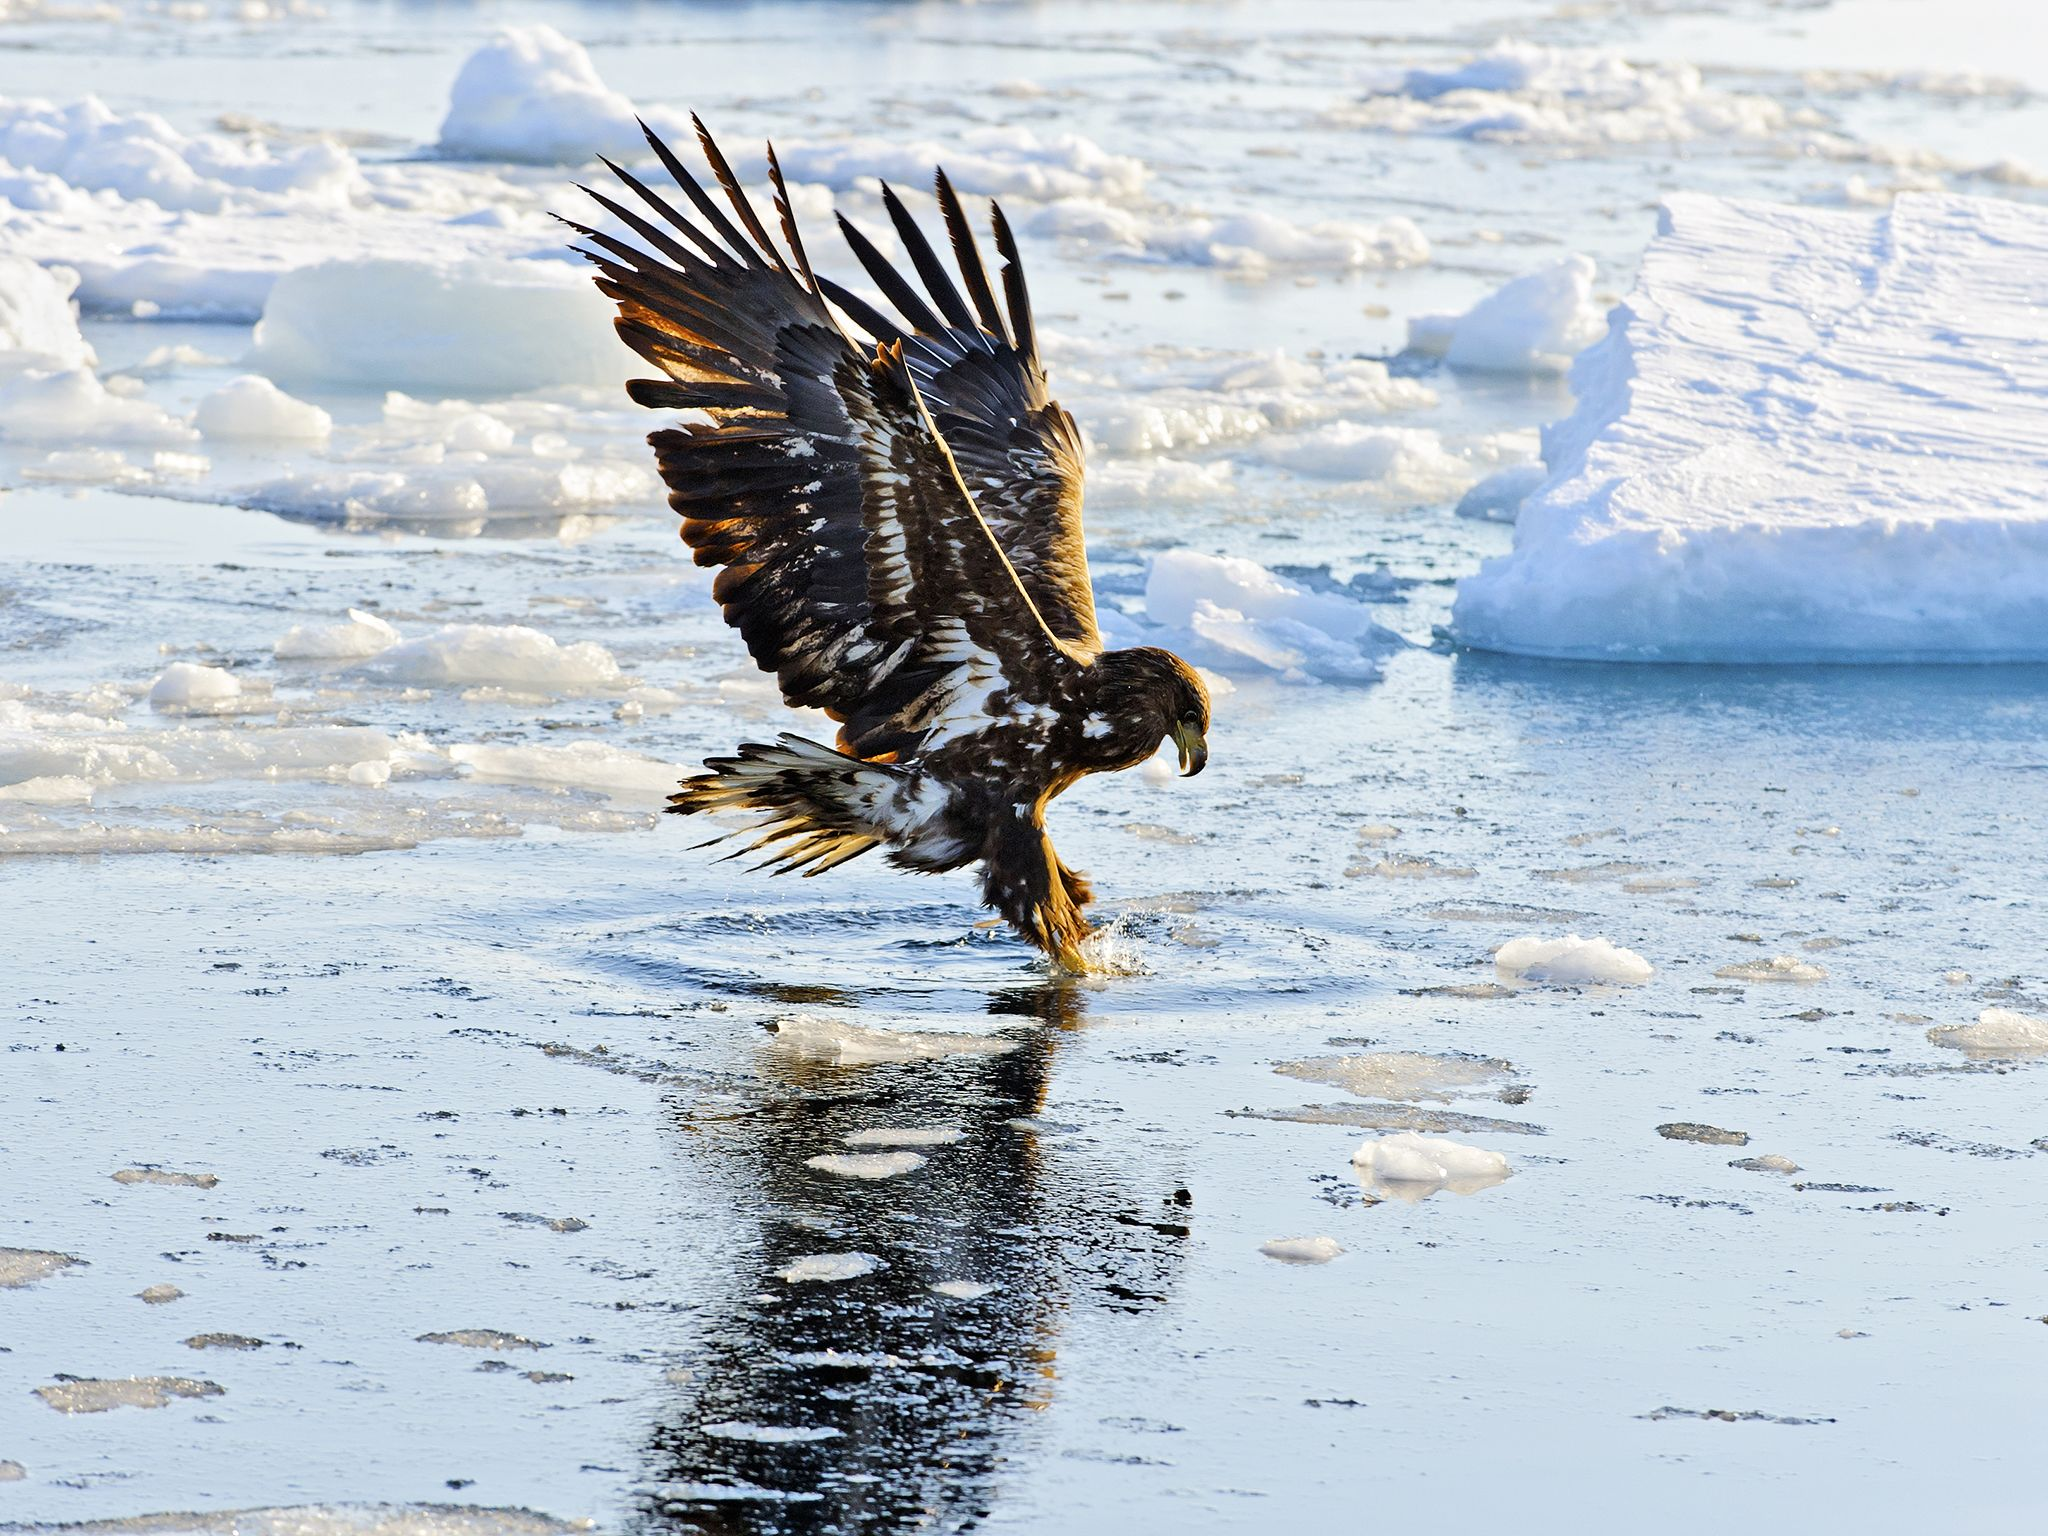 A White tailed eagle (Haliaeetus albicilla) fishing.  This image is from Winter Wonderland. [Photo of the day - December 2015]